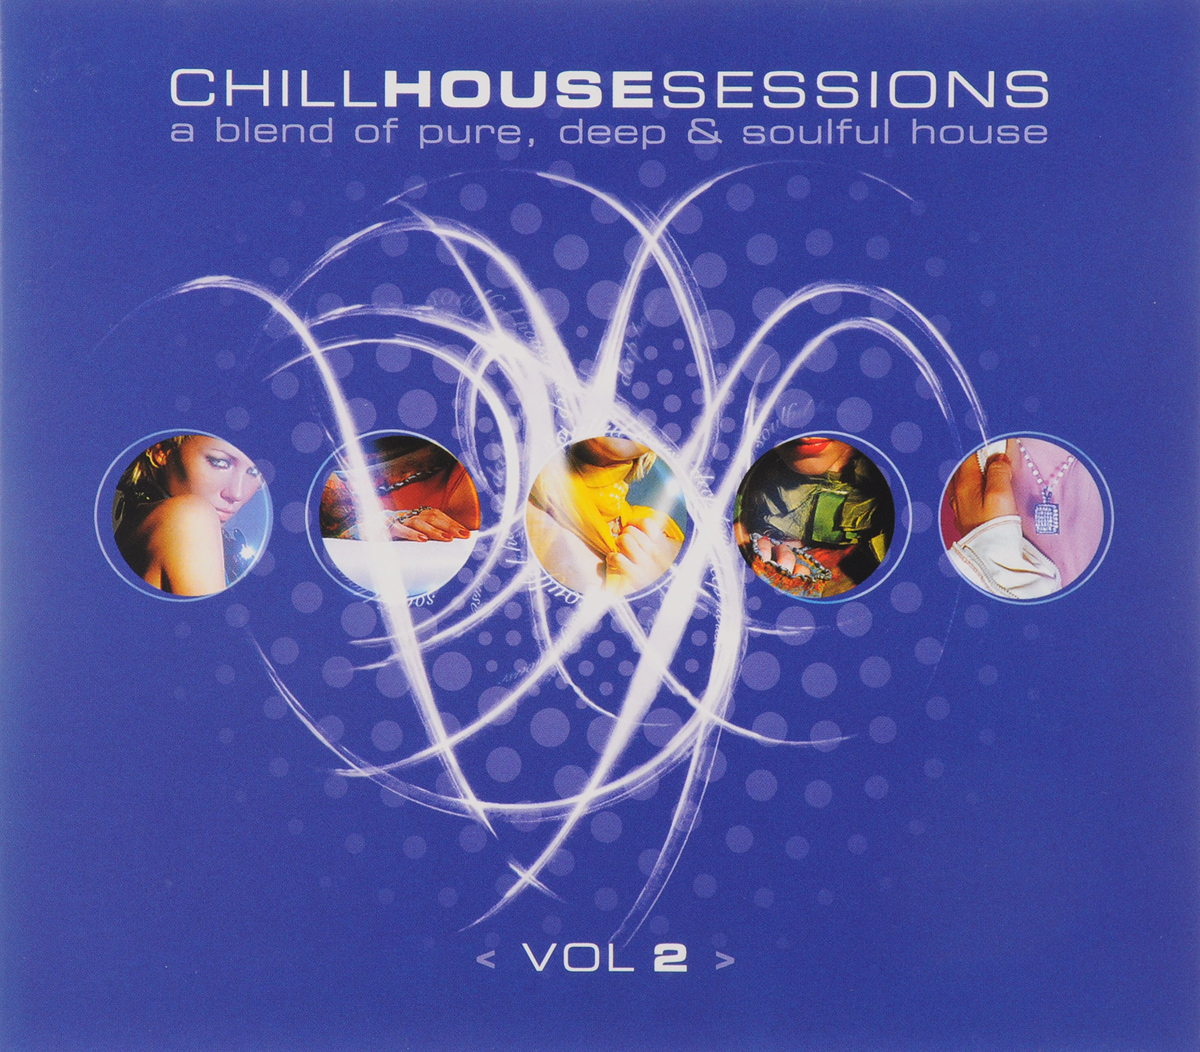 Rhod,Ronan,Dual Sessions,MoreCuts,+ Comfort,Sound Behaviour,Lov.e,Speechless Project,Lalann Chill House Sessions. A Blend Of Pure, Deep & Soulful House. Vol. 2 bbc sessions cd